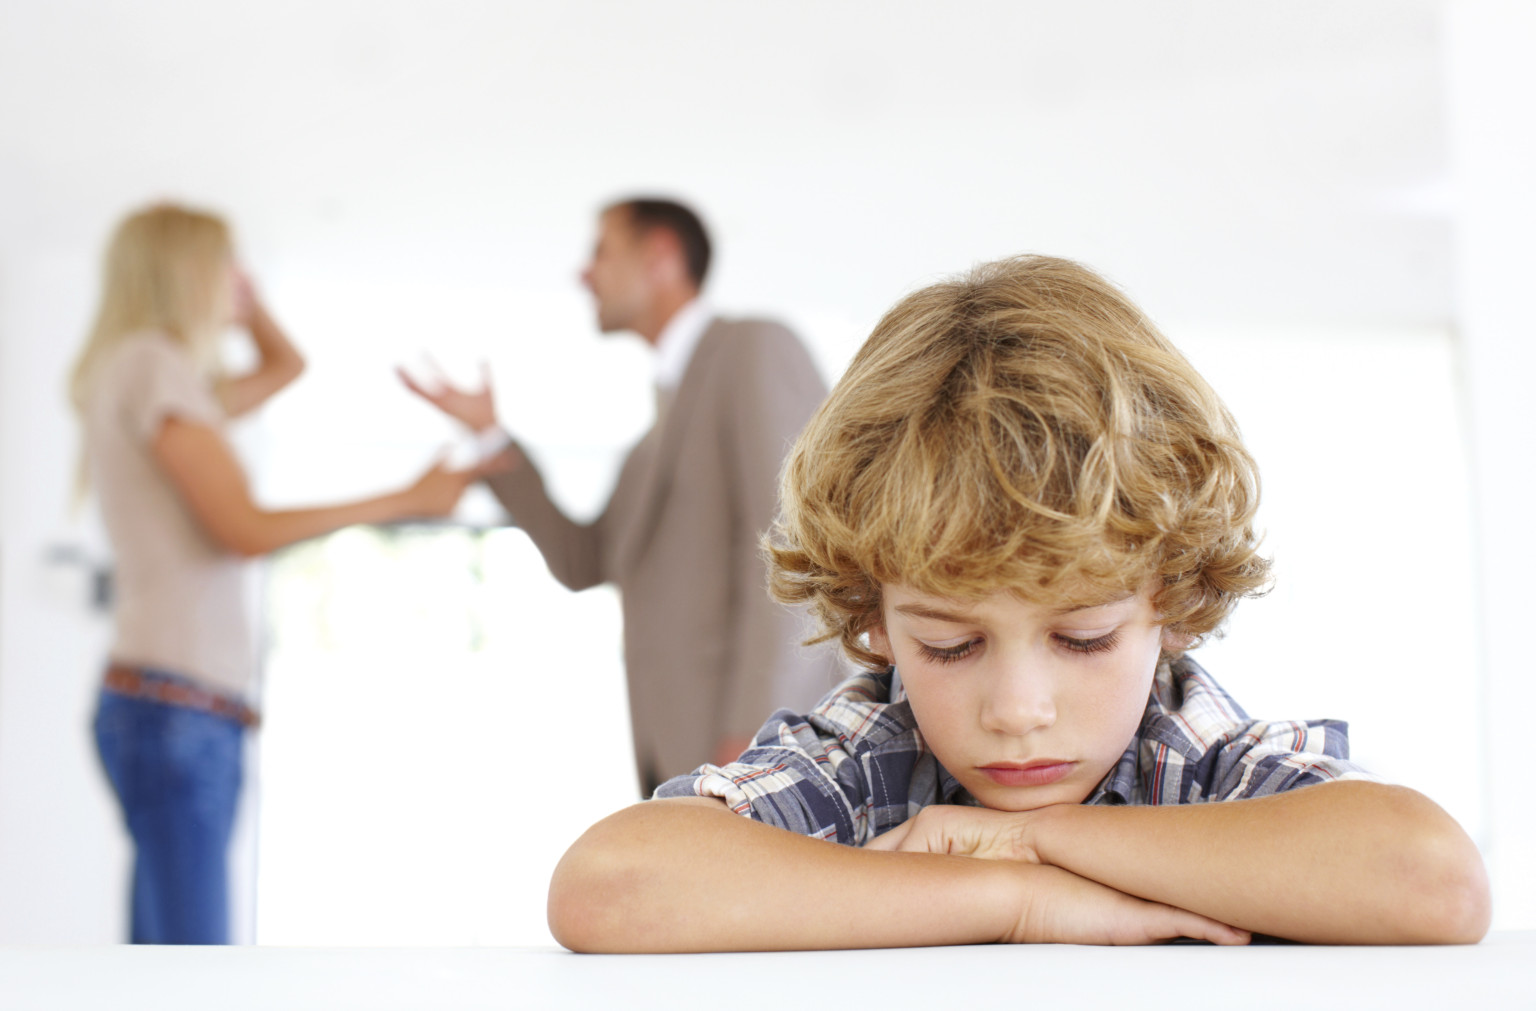 divorce and the effect on children As the effect of divorce, children will go through emotional and behavioural distress in order to adapt to the life after divorce according to allison and furstenberg (1989), children of divorced parents experience more emotional and behavioural distress compared to children with intact families.